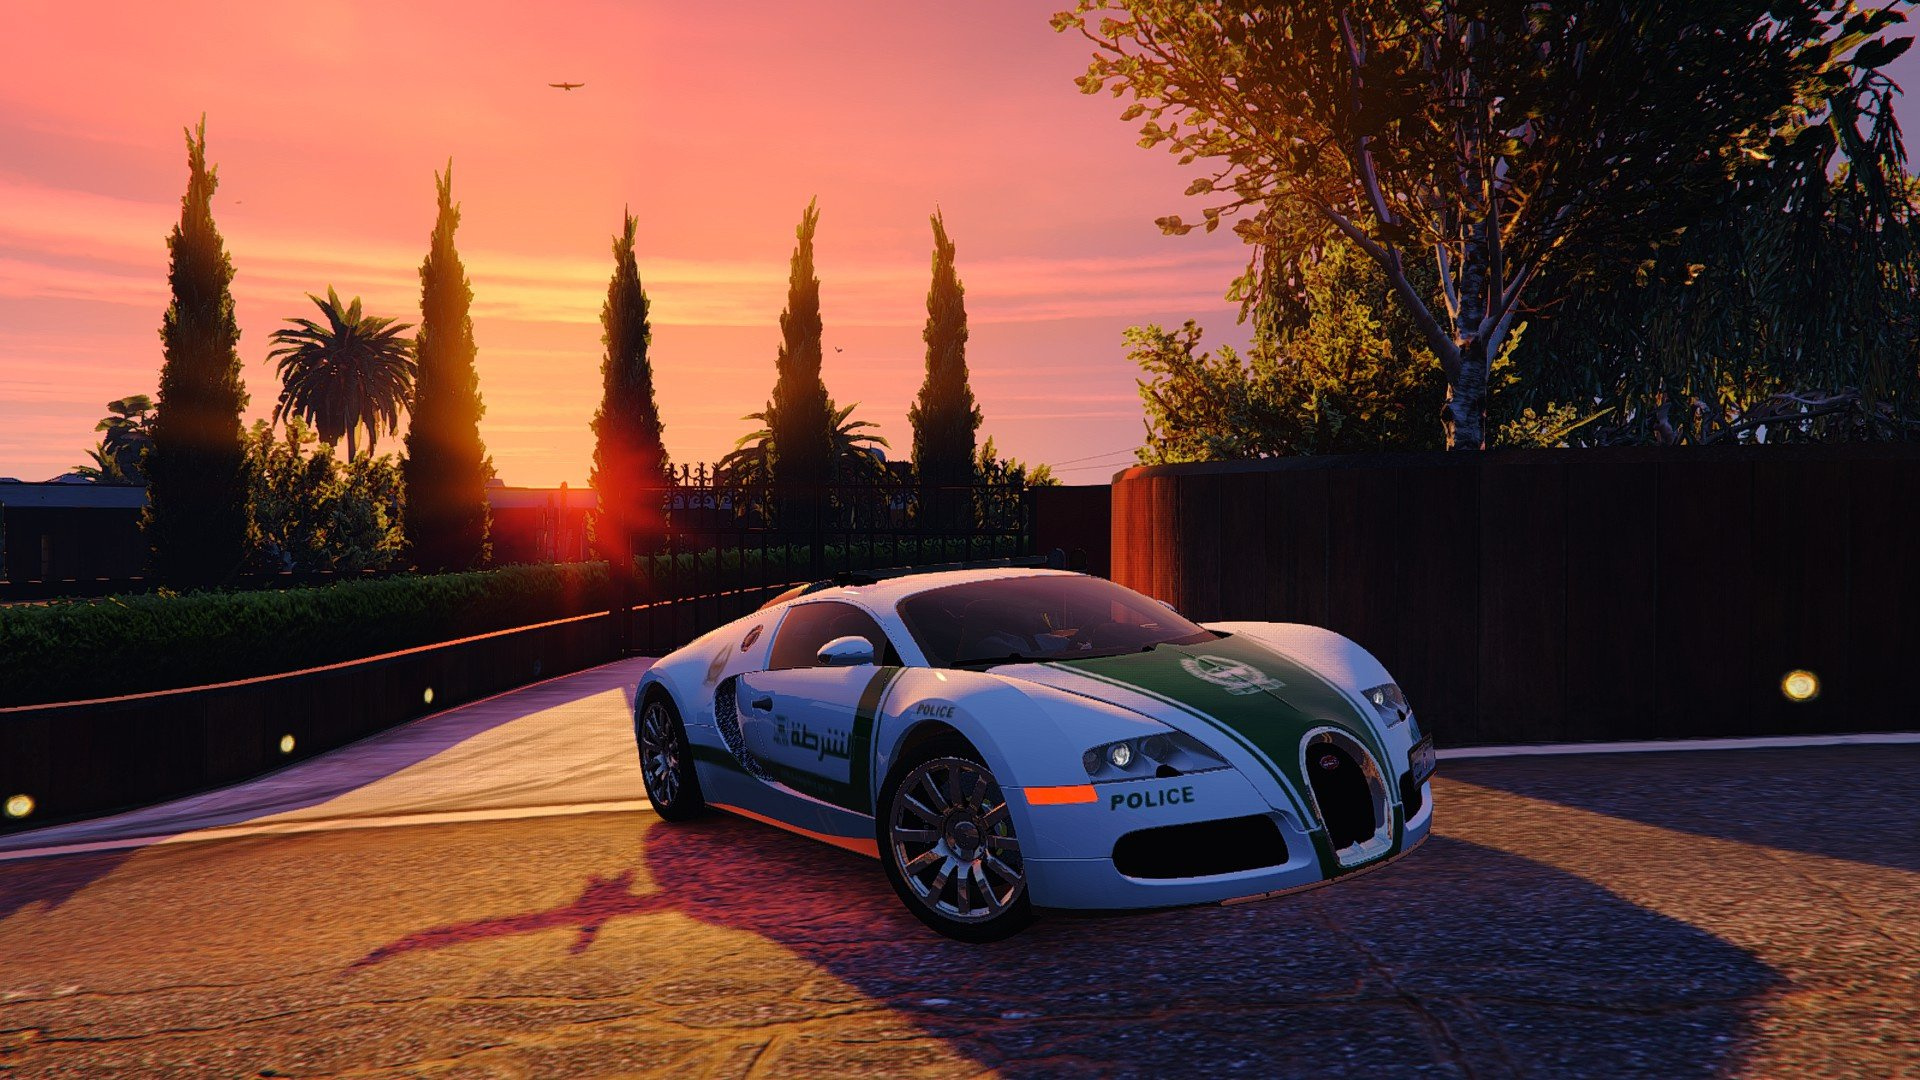 bugatti veyron dubai police 4k gta5. Black Bedroom Furniture Sets. Home Design Ideas